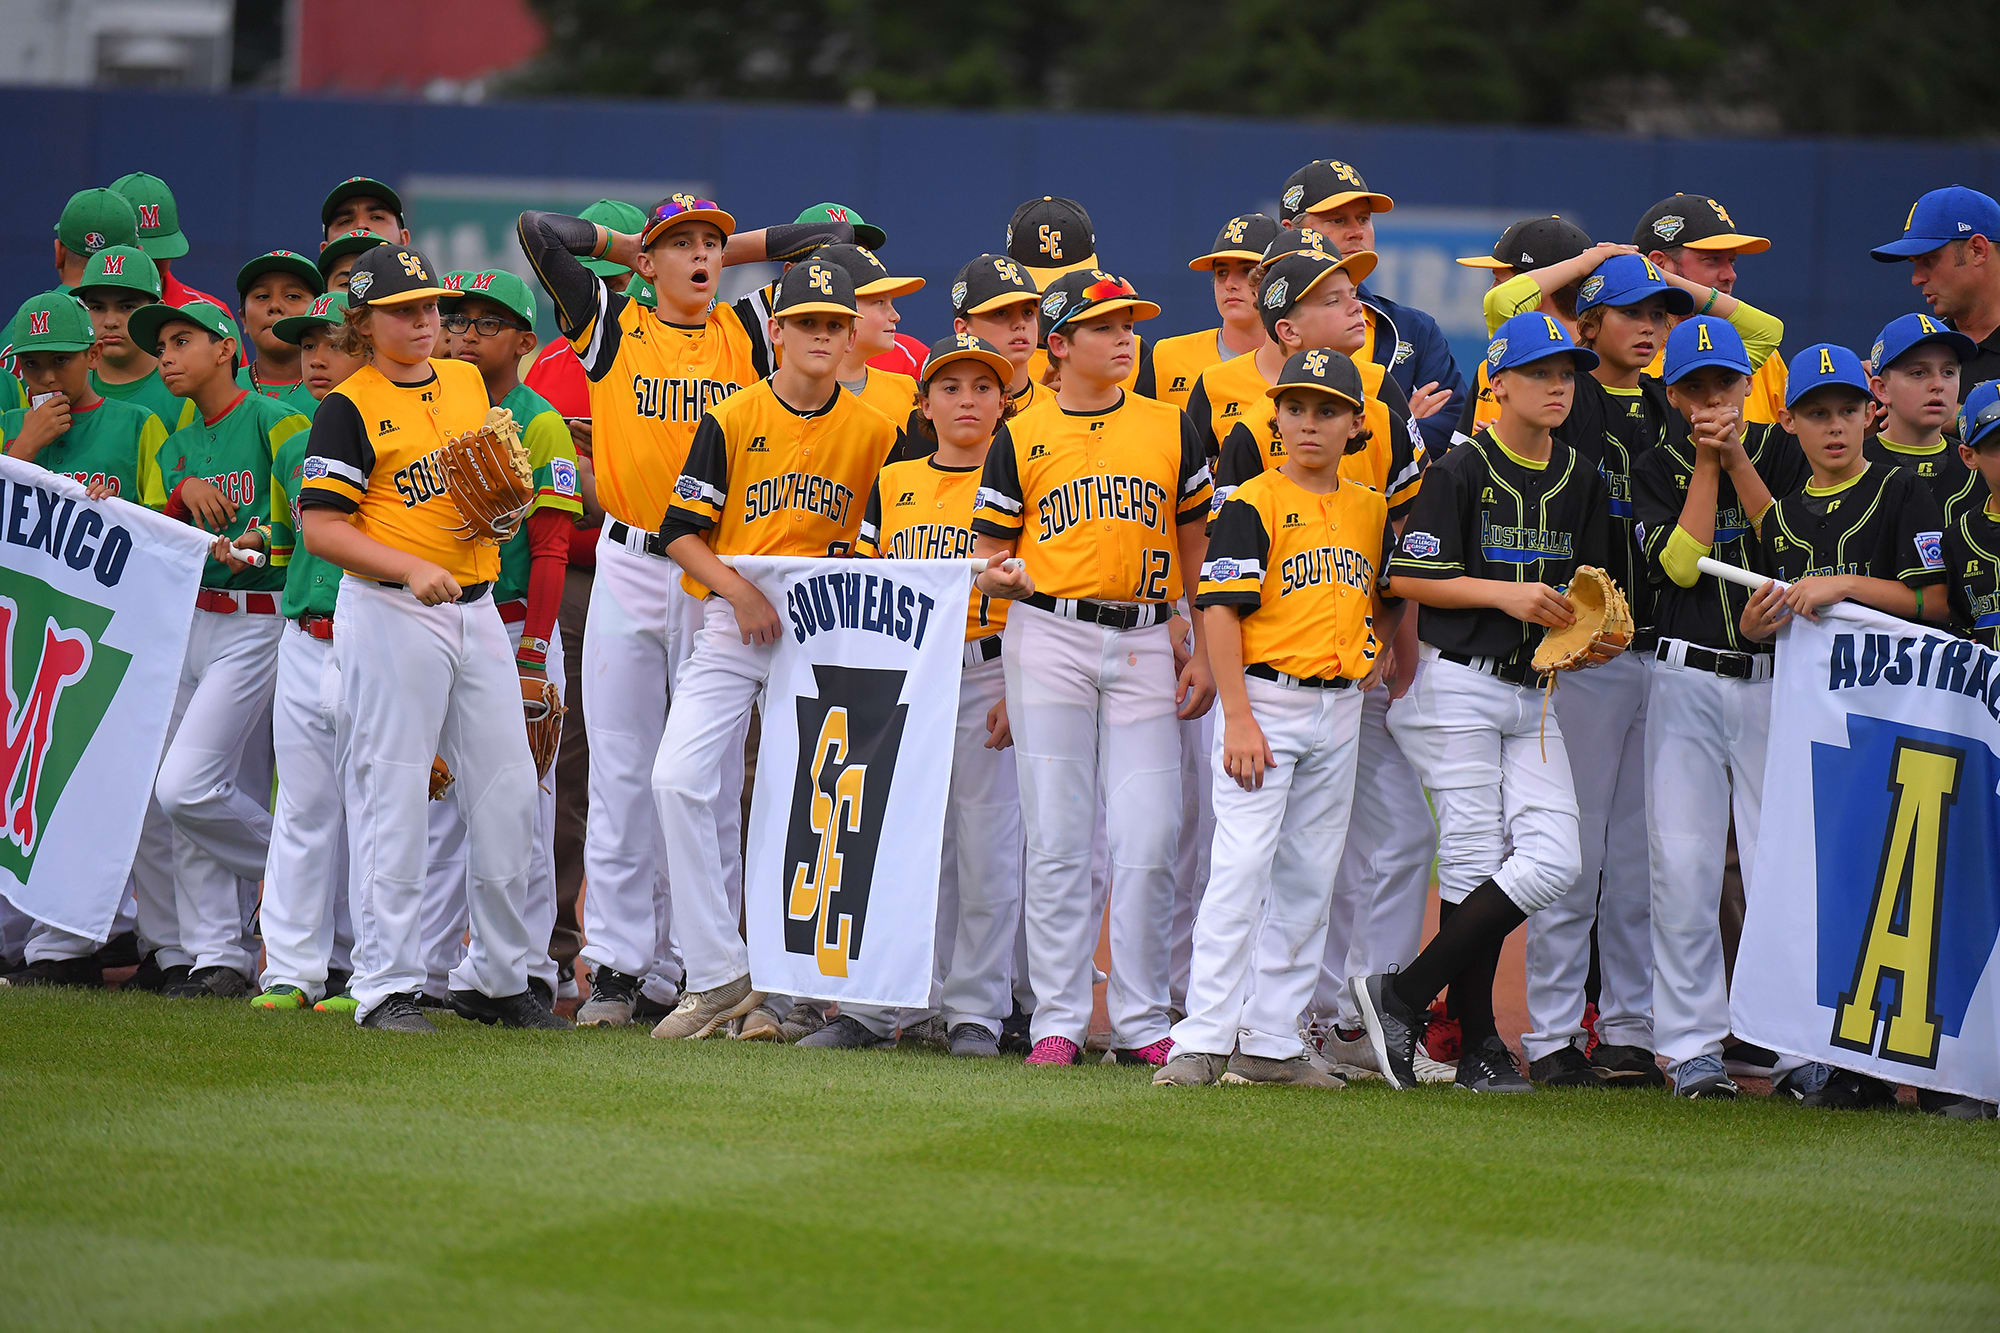 ll players opening ceremonies mlb classic